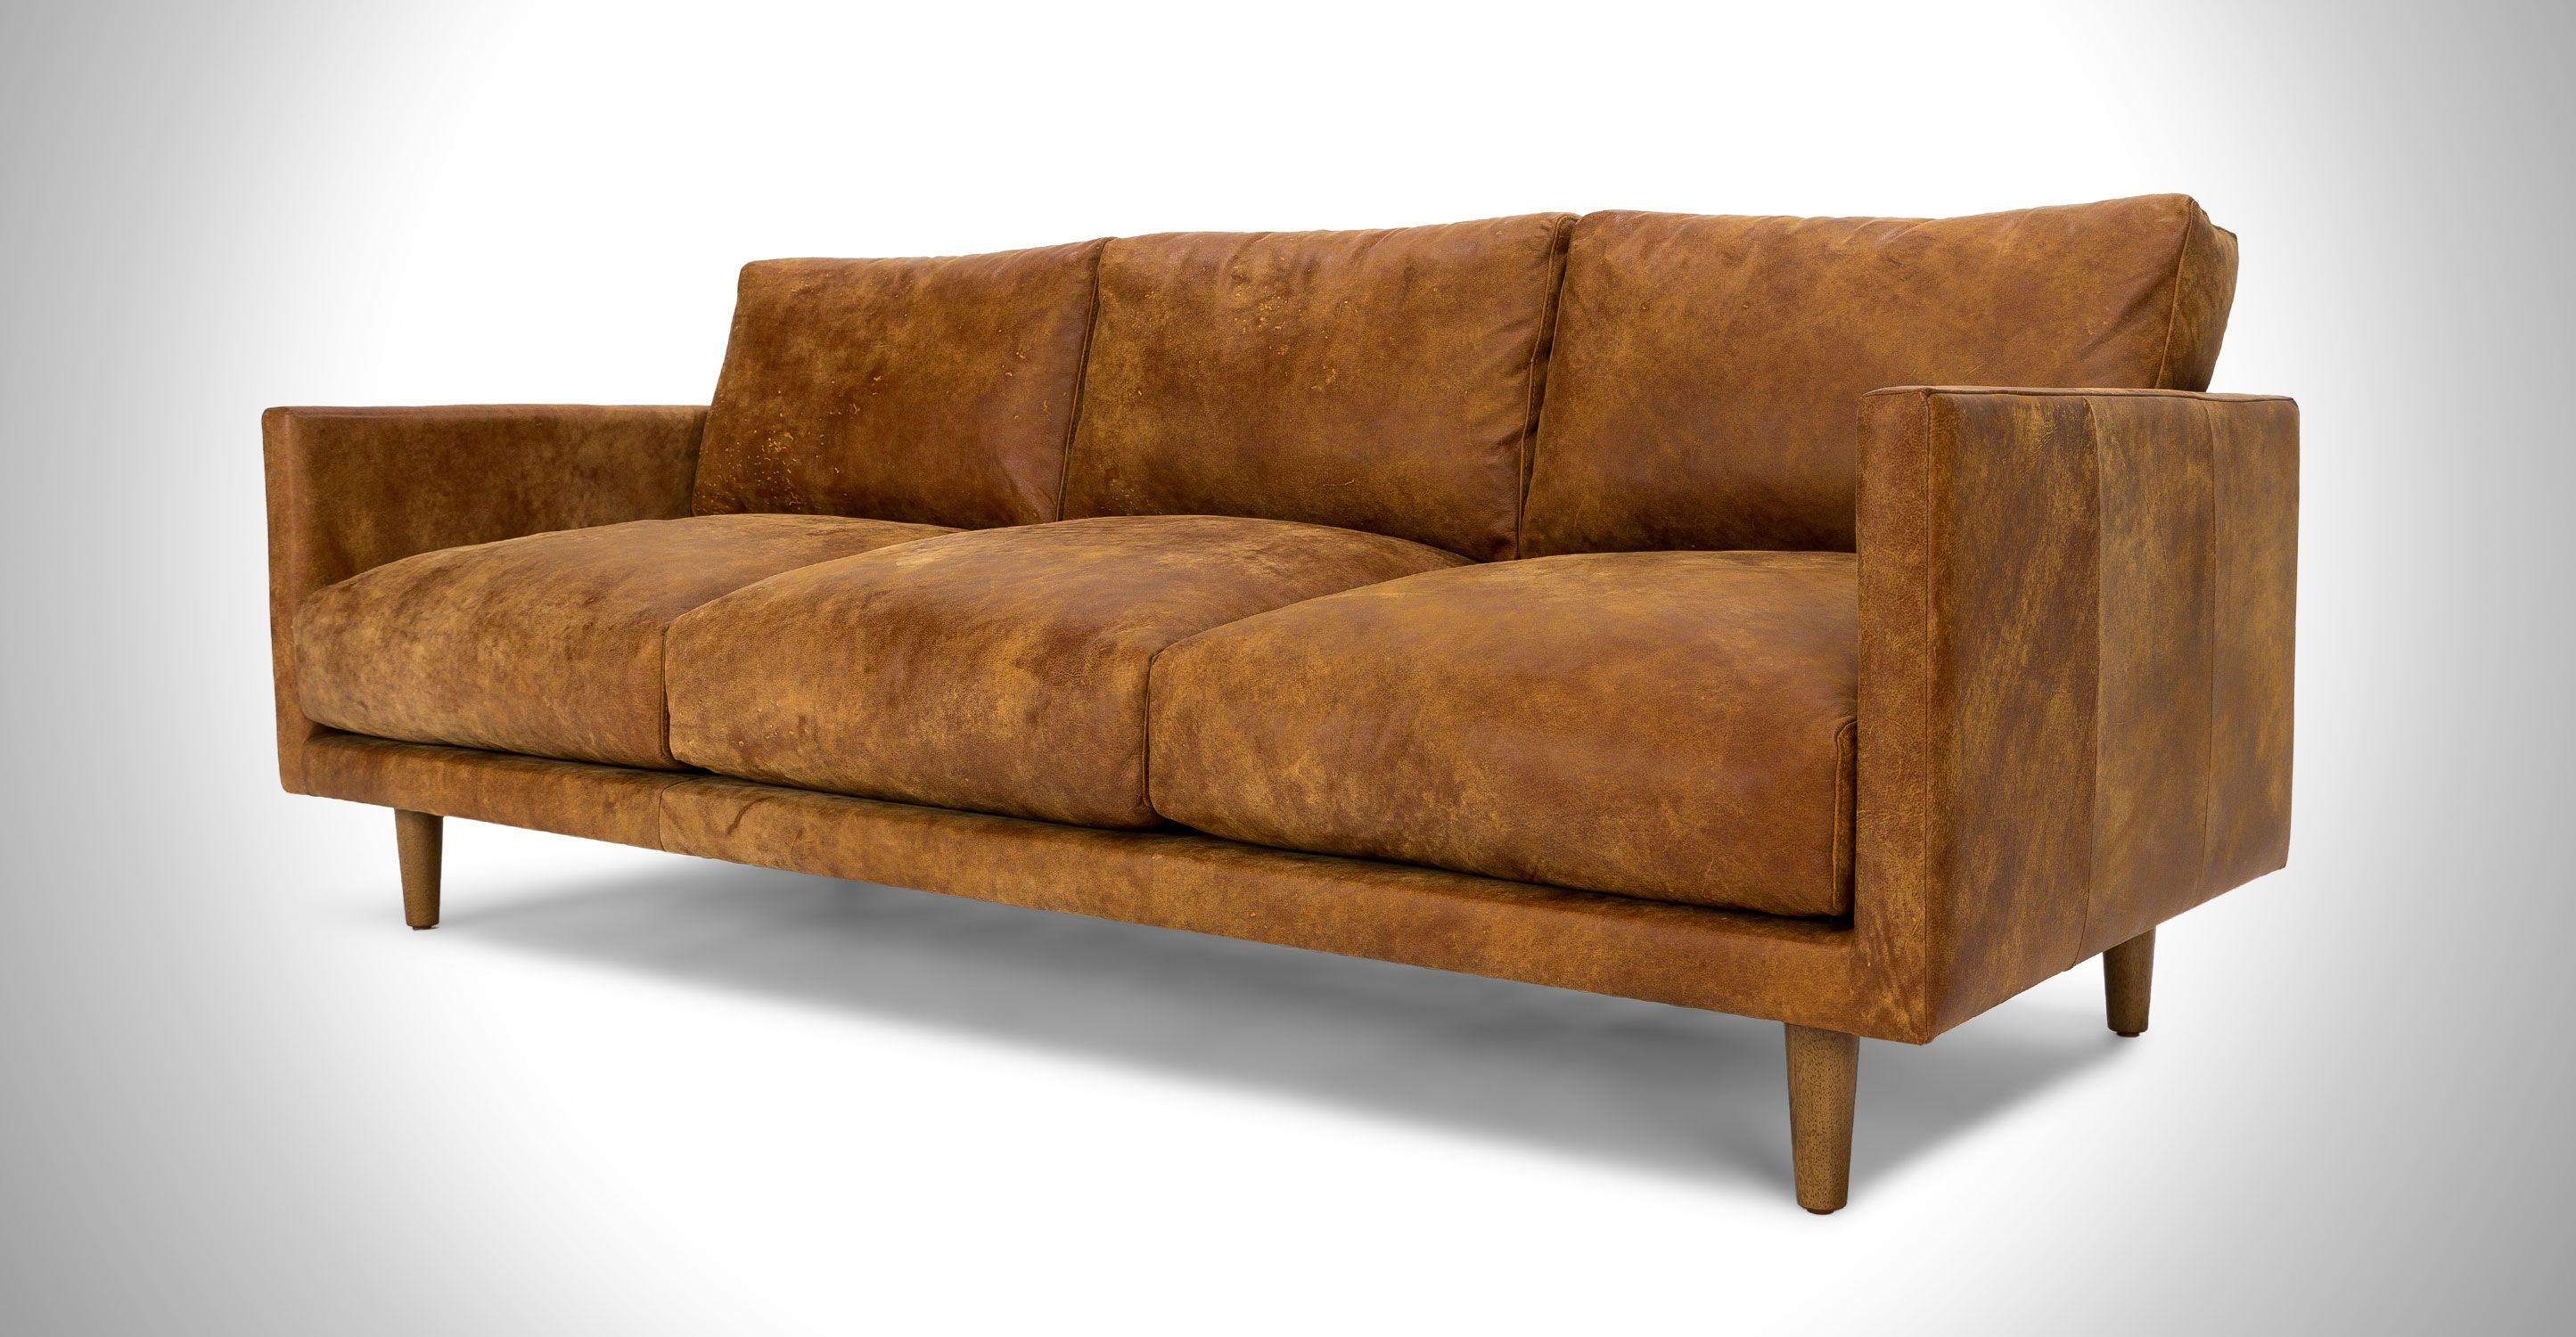 Tan Brown Leather Sofa Upholstered